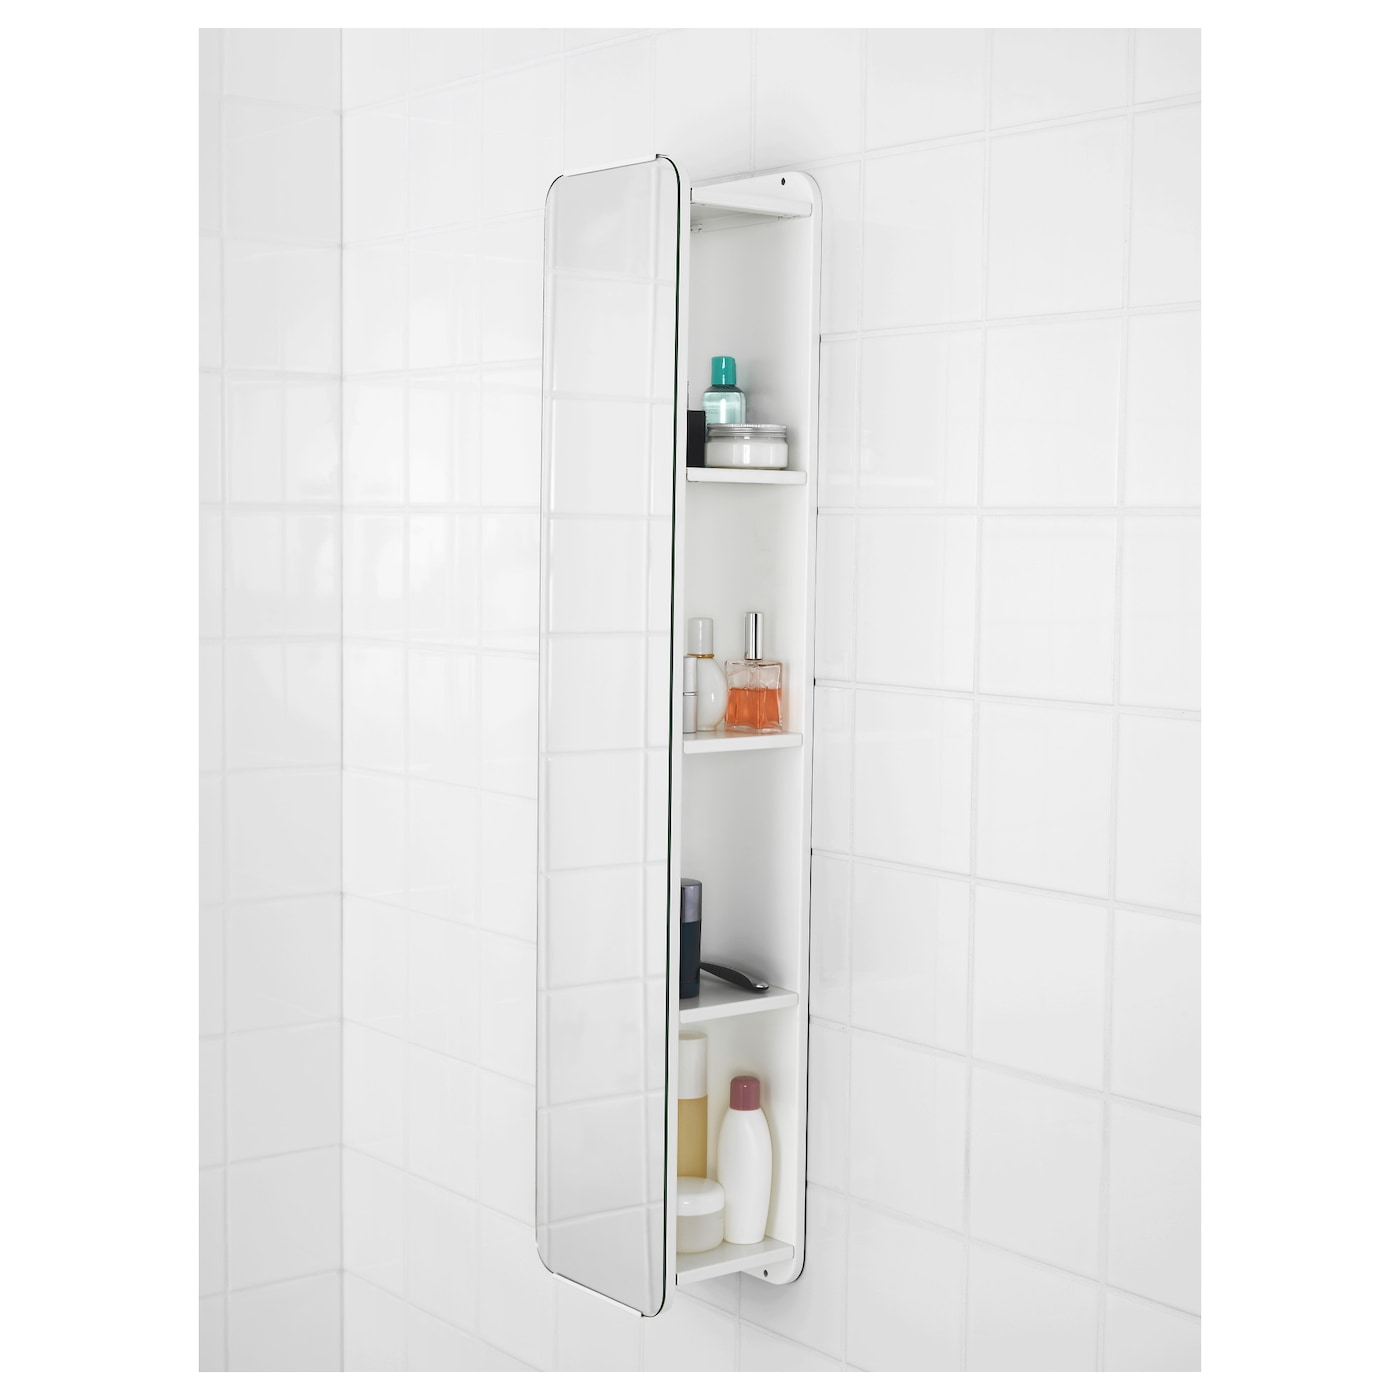 ikea bathroom mirror with shelf brickan mirror with storage unit white 20x100 cm ikea 23511